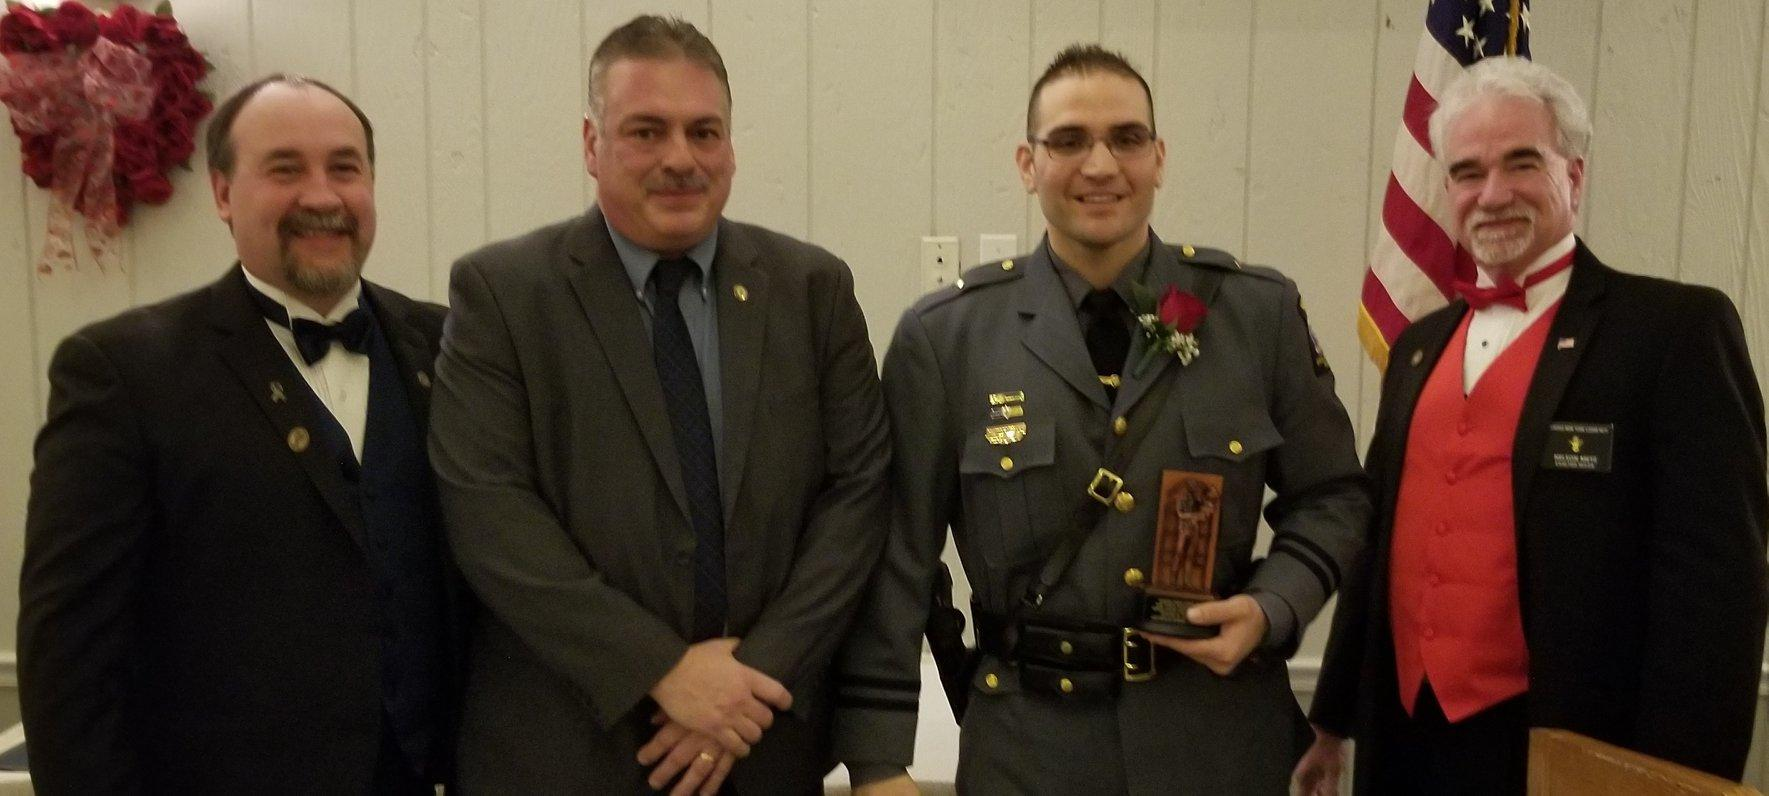 Oswego Elks award Lt. Robert Vaccarelli University Police Officer of the Year award